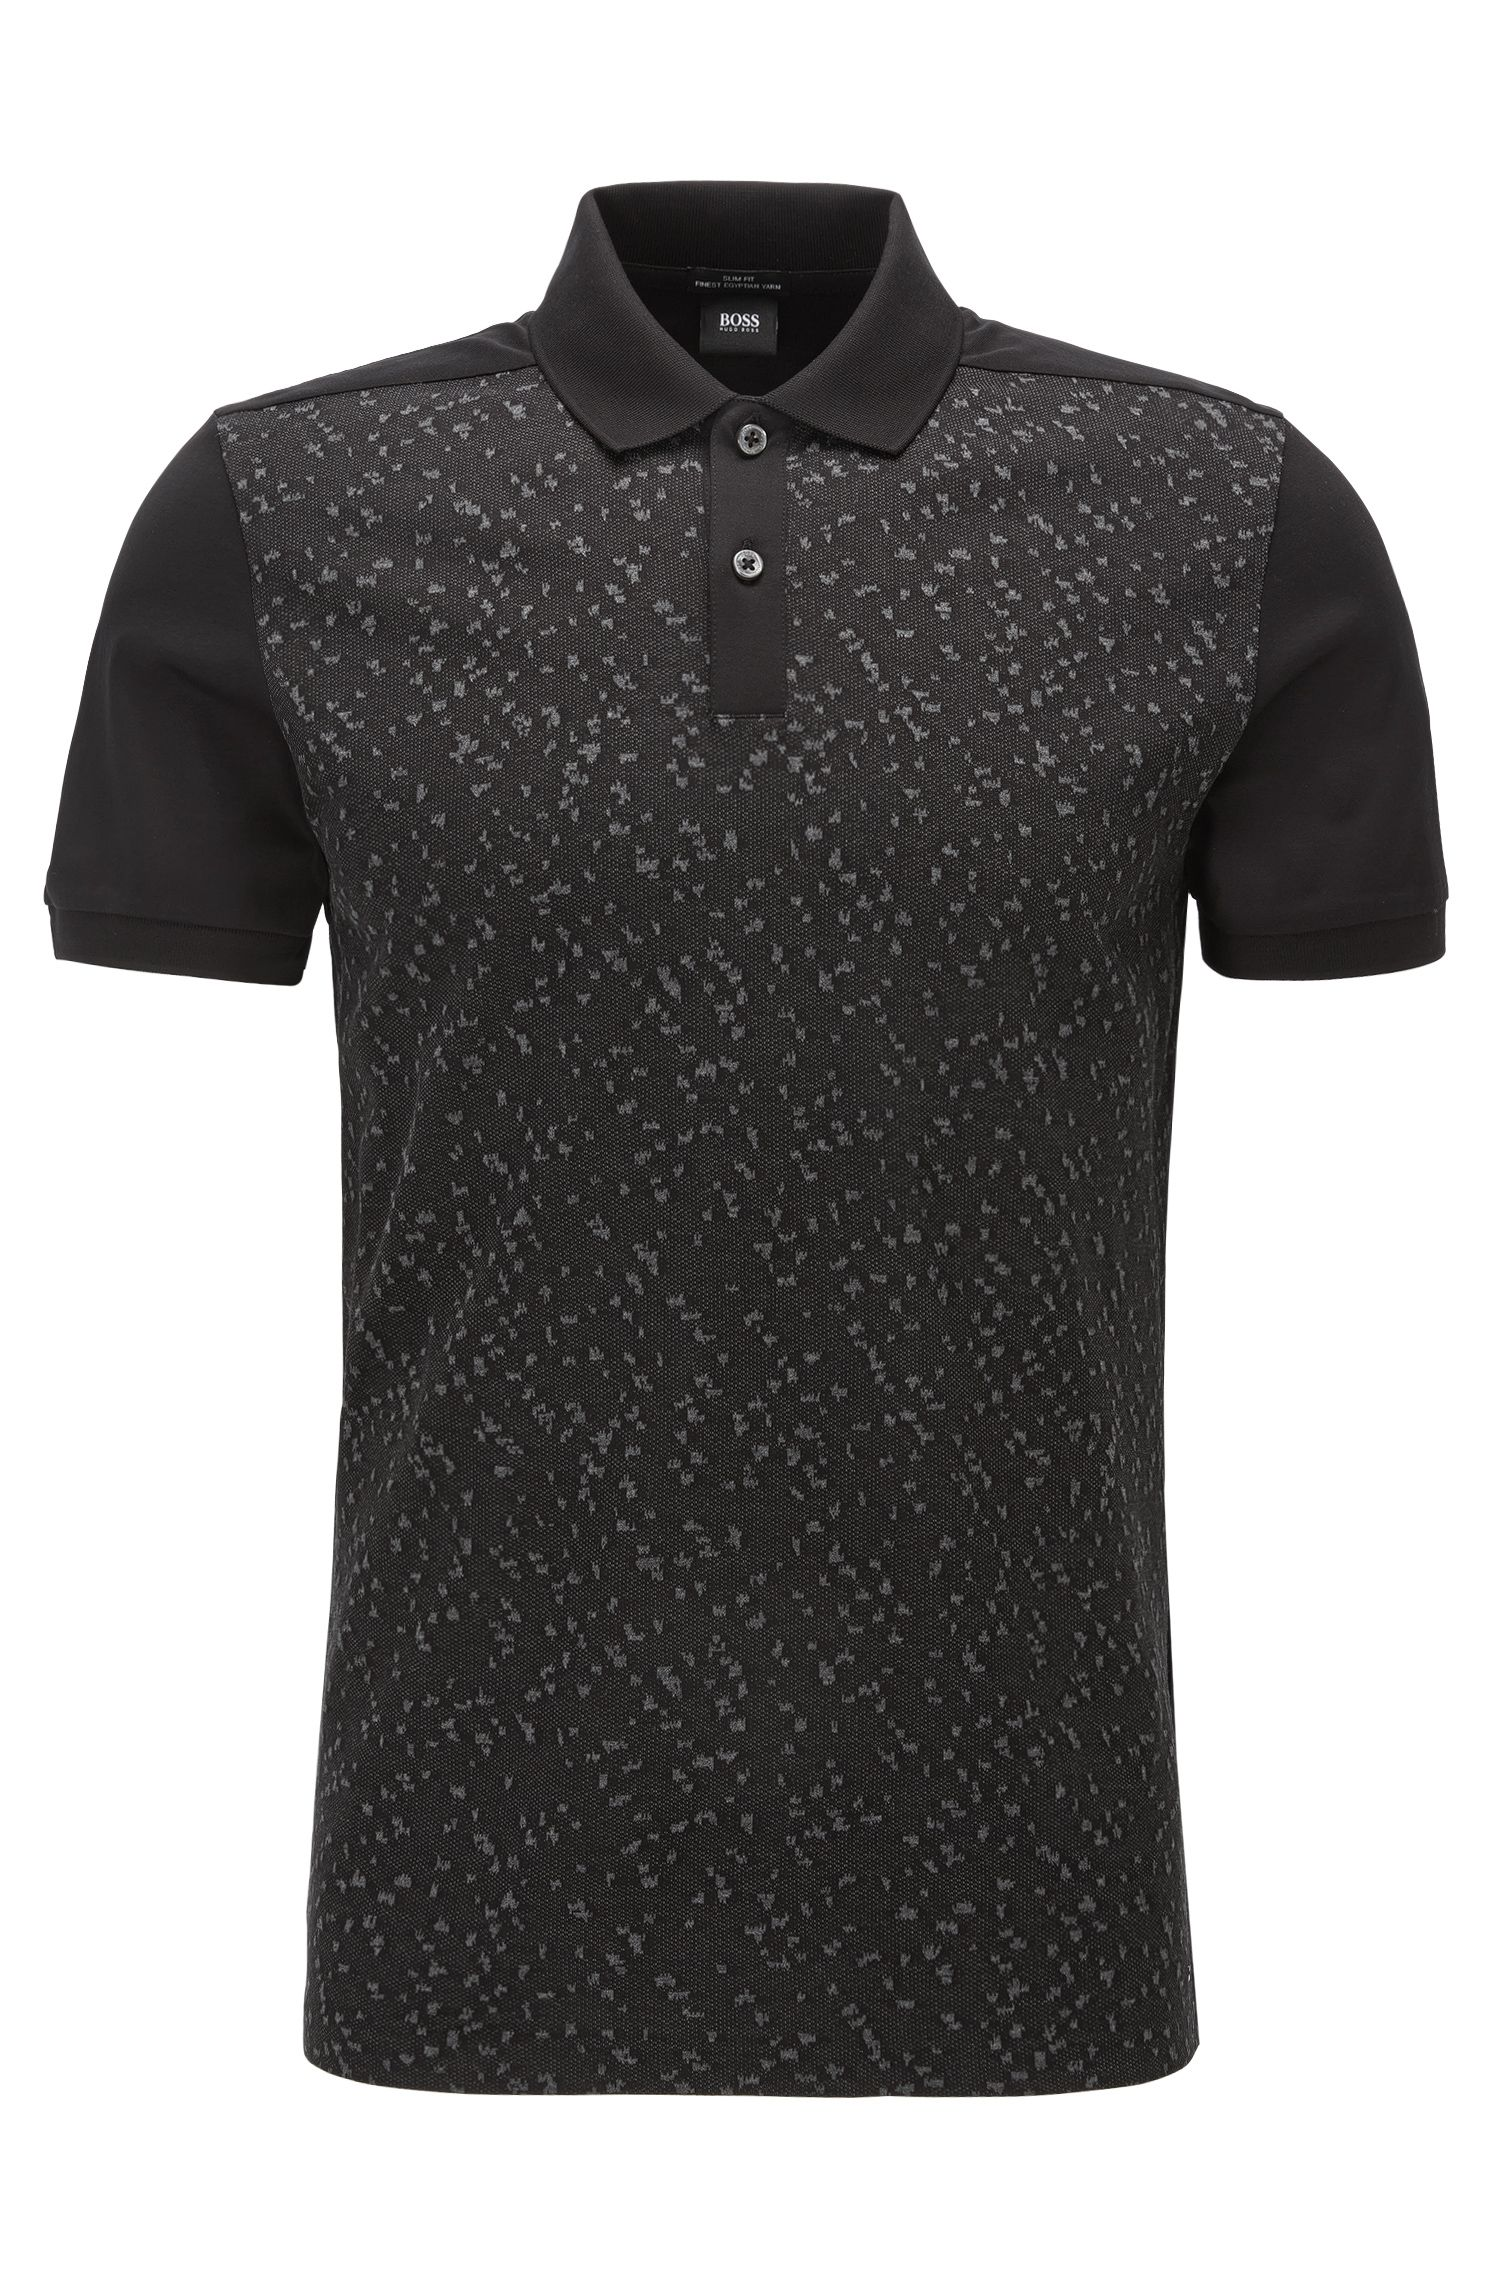 'Phillipson'   Slim Fit, Cotton Patterned Polo Shirt